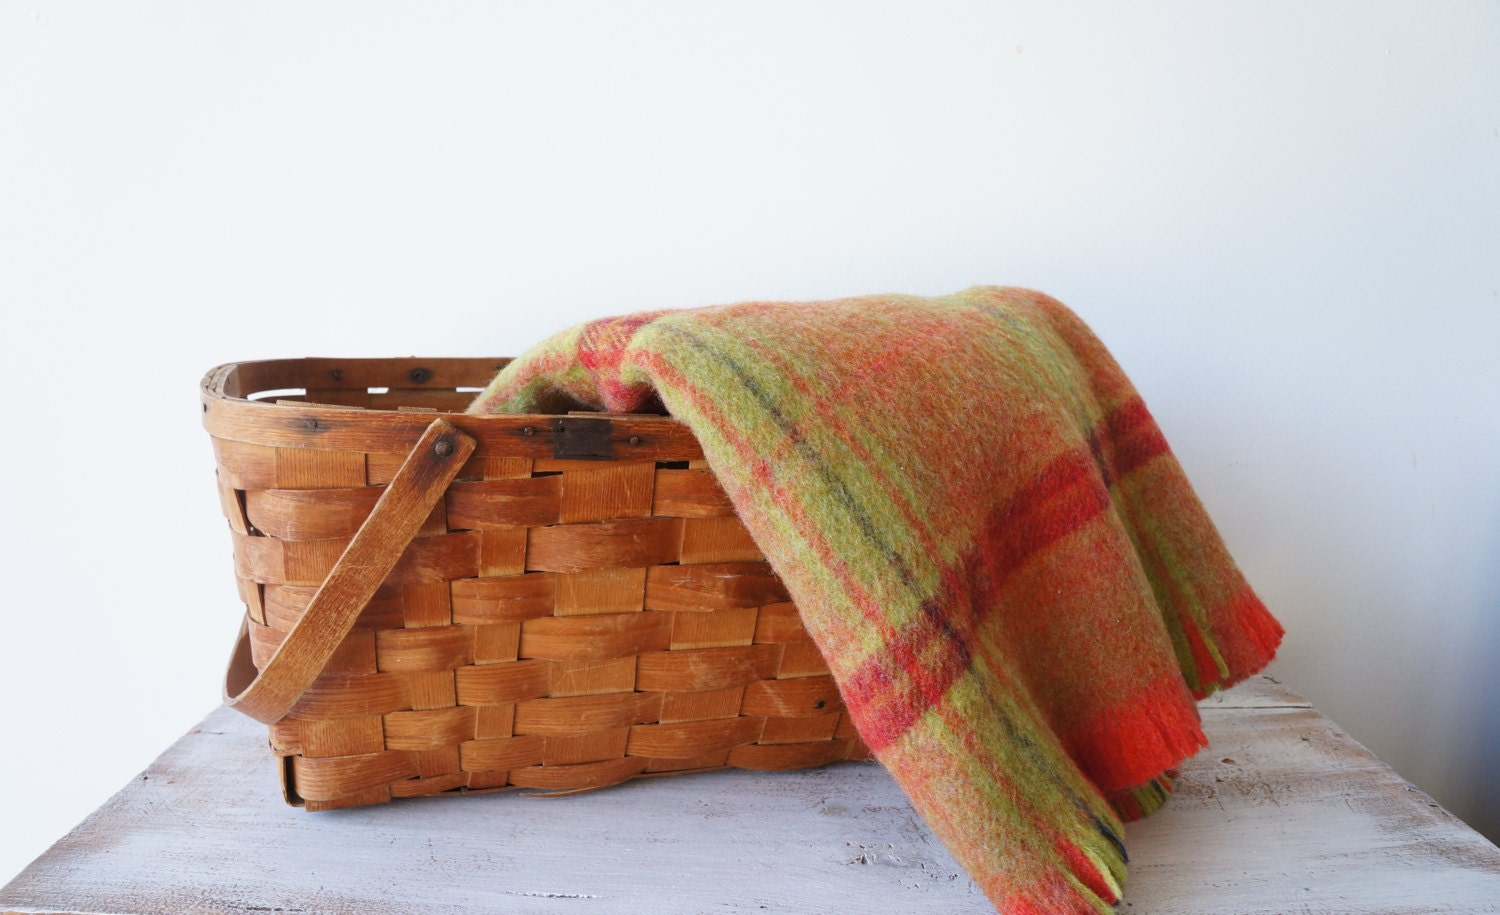 Antique Large Basket Folding Handles, Large Woven Wood Basket, Market Basket,  Rustic Splint Basket, Country Rustic Wedding Decor, Fall - RedHillHome